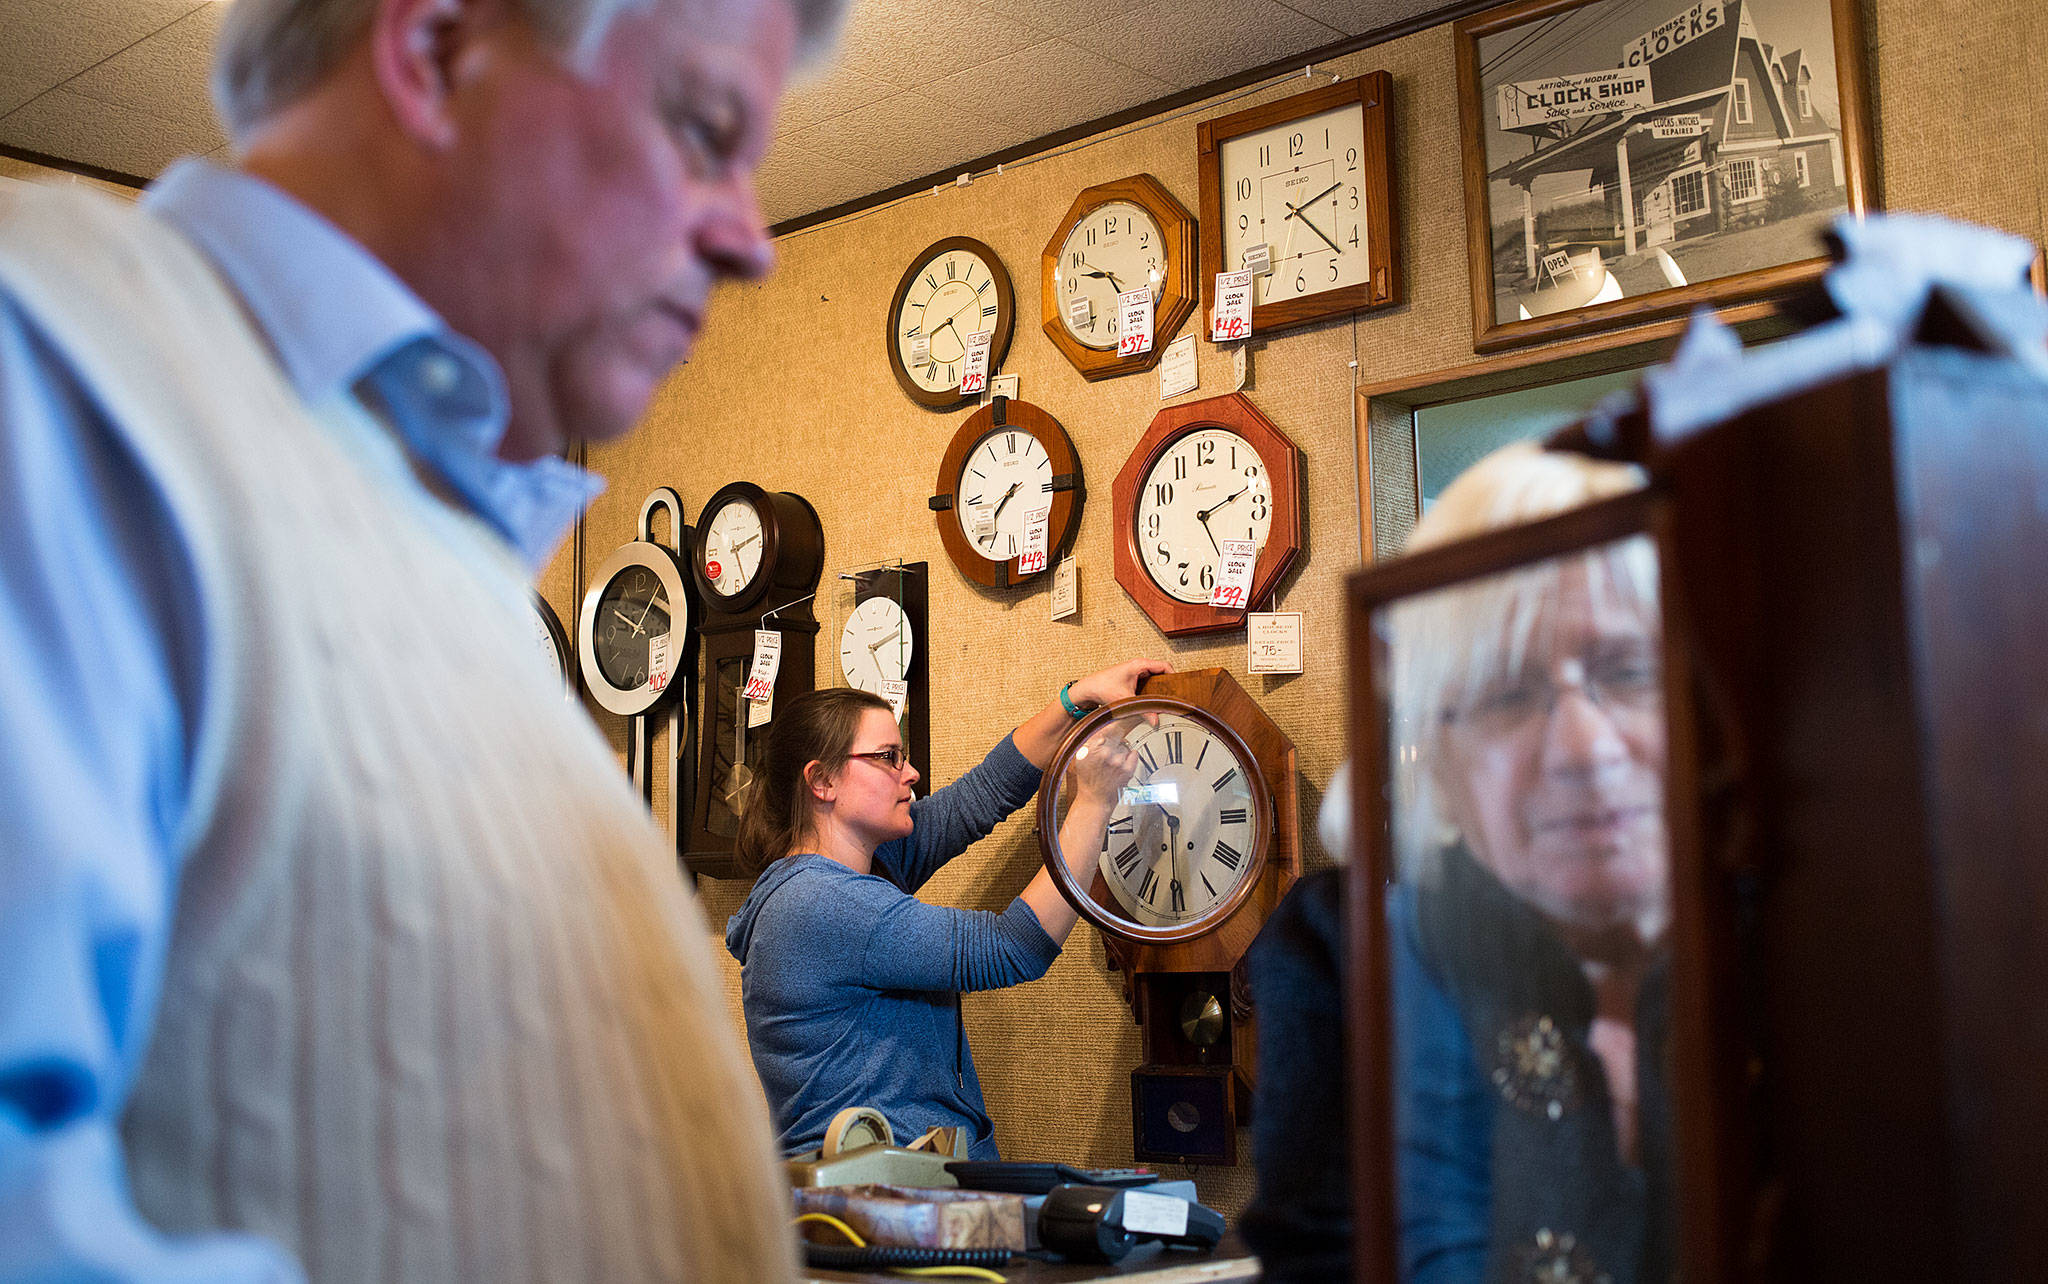 Crystal Rice works on a customer's clock as owner Susie Hennig (right) winds a time-and-strike clock brought in by Steve Heath at A House of Clocks on Monday in Lynnwood. The landmark Lynnwood shop plans to close after more than 54 years. David Nofziger said he and his siblings, who took over the business from their parents, are closing the shop because they're reaching retirement age. (Andy Bronson / The Herald)